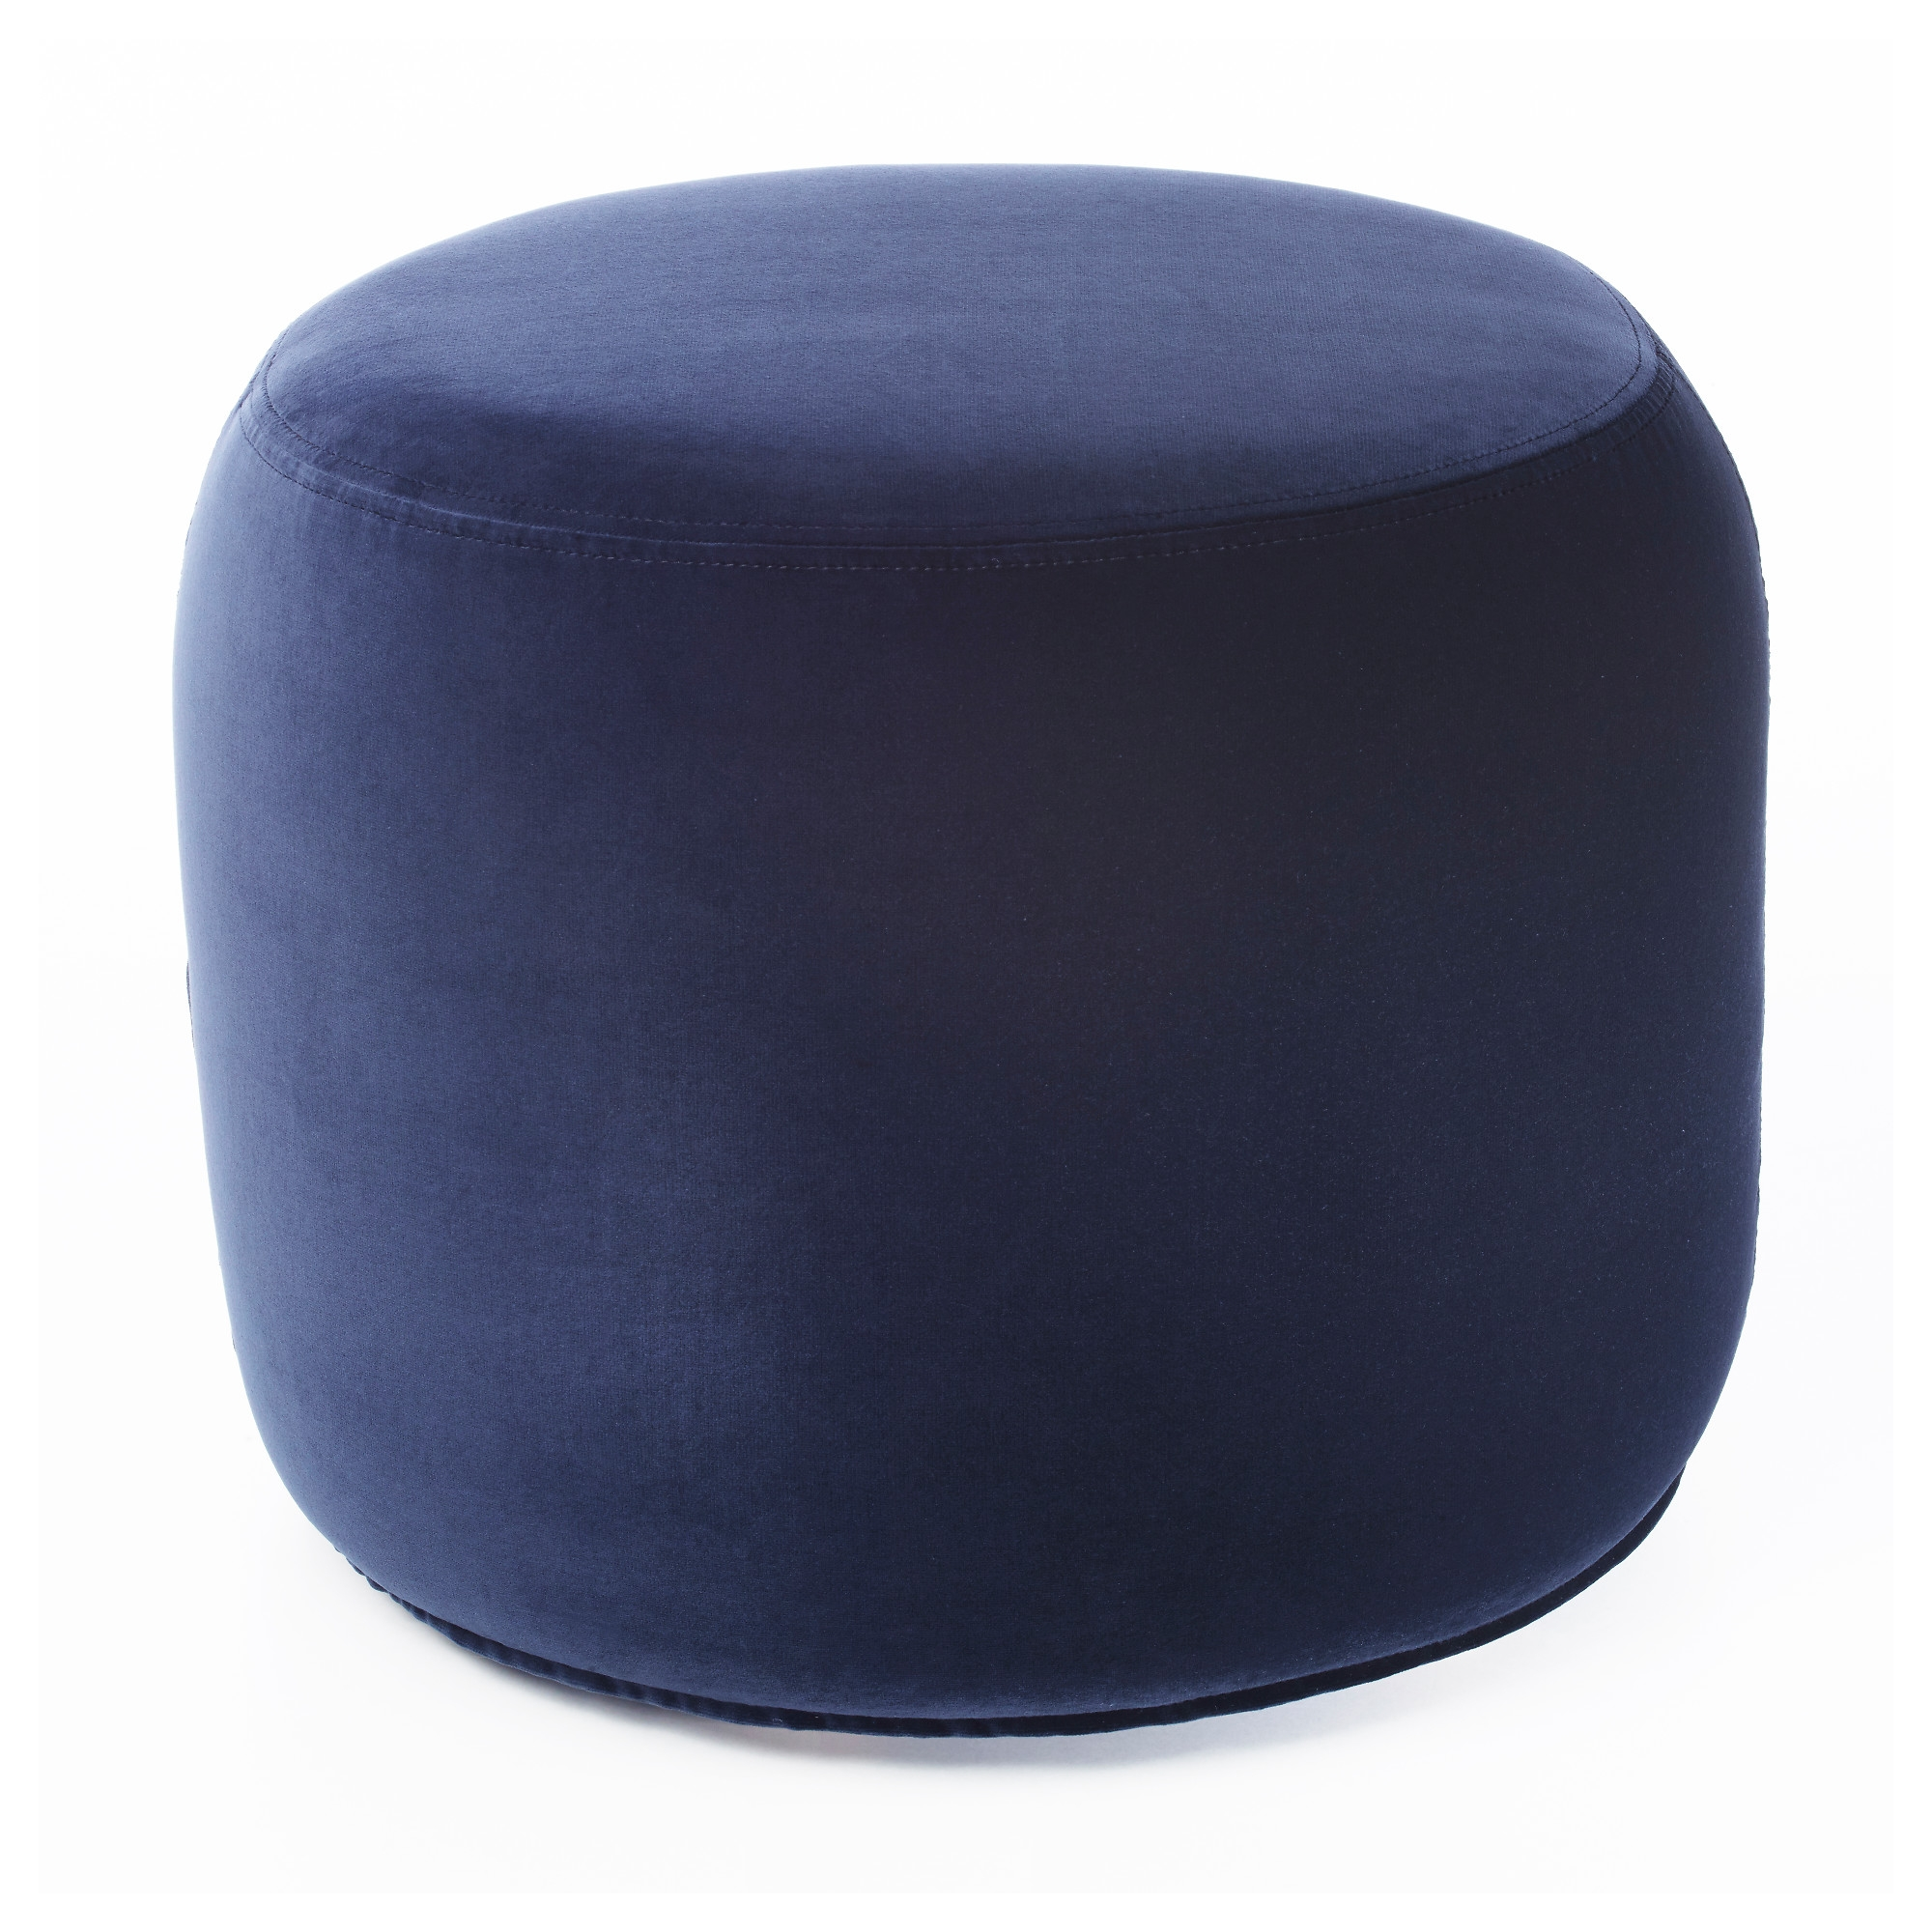 Stockholm 2017 Pouffe Sandbacka Dark Blue 50×50 Cm Ikea Inside Small Footstools And Pouffes (View 1 of 15)